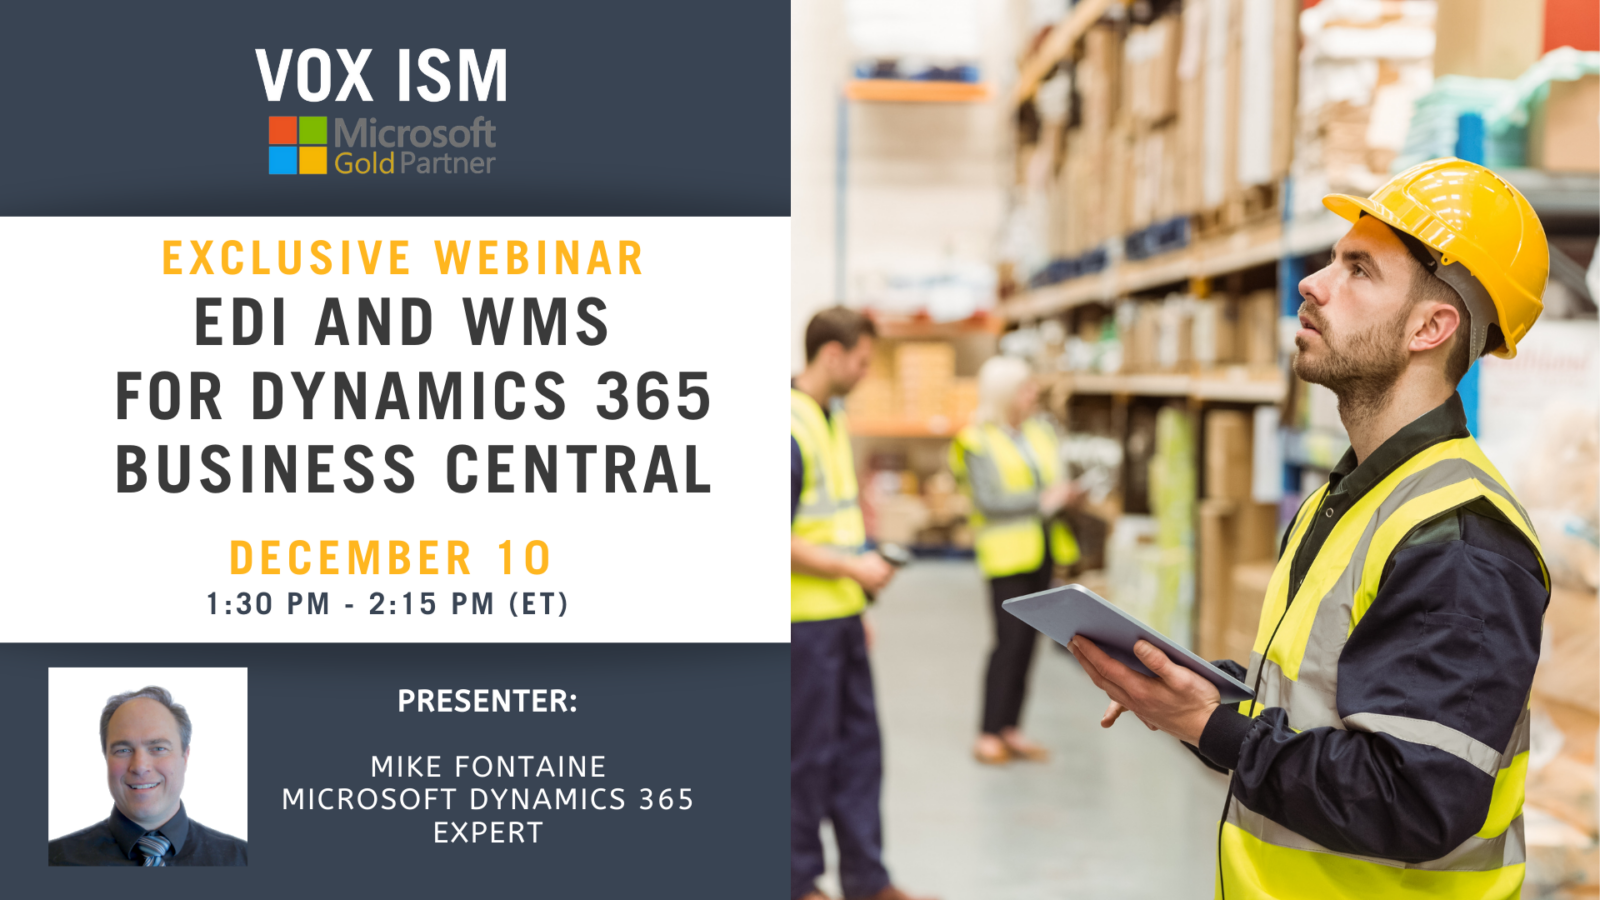 EDI and WMS for Dynamics 365 Business Central - December 10 - Webinar